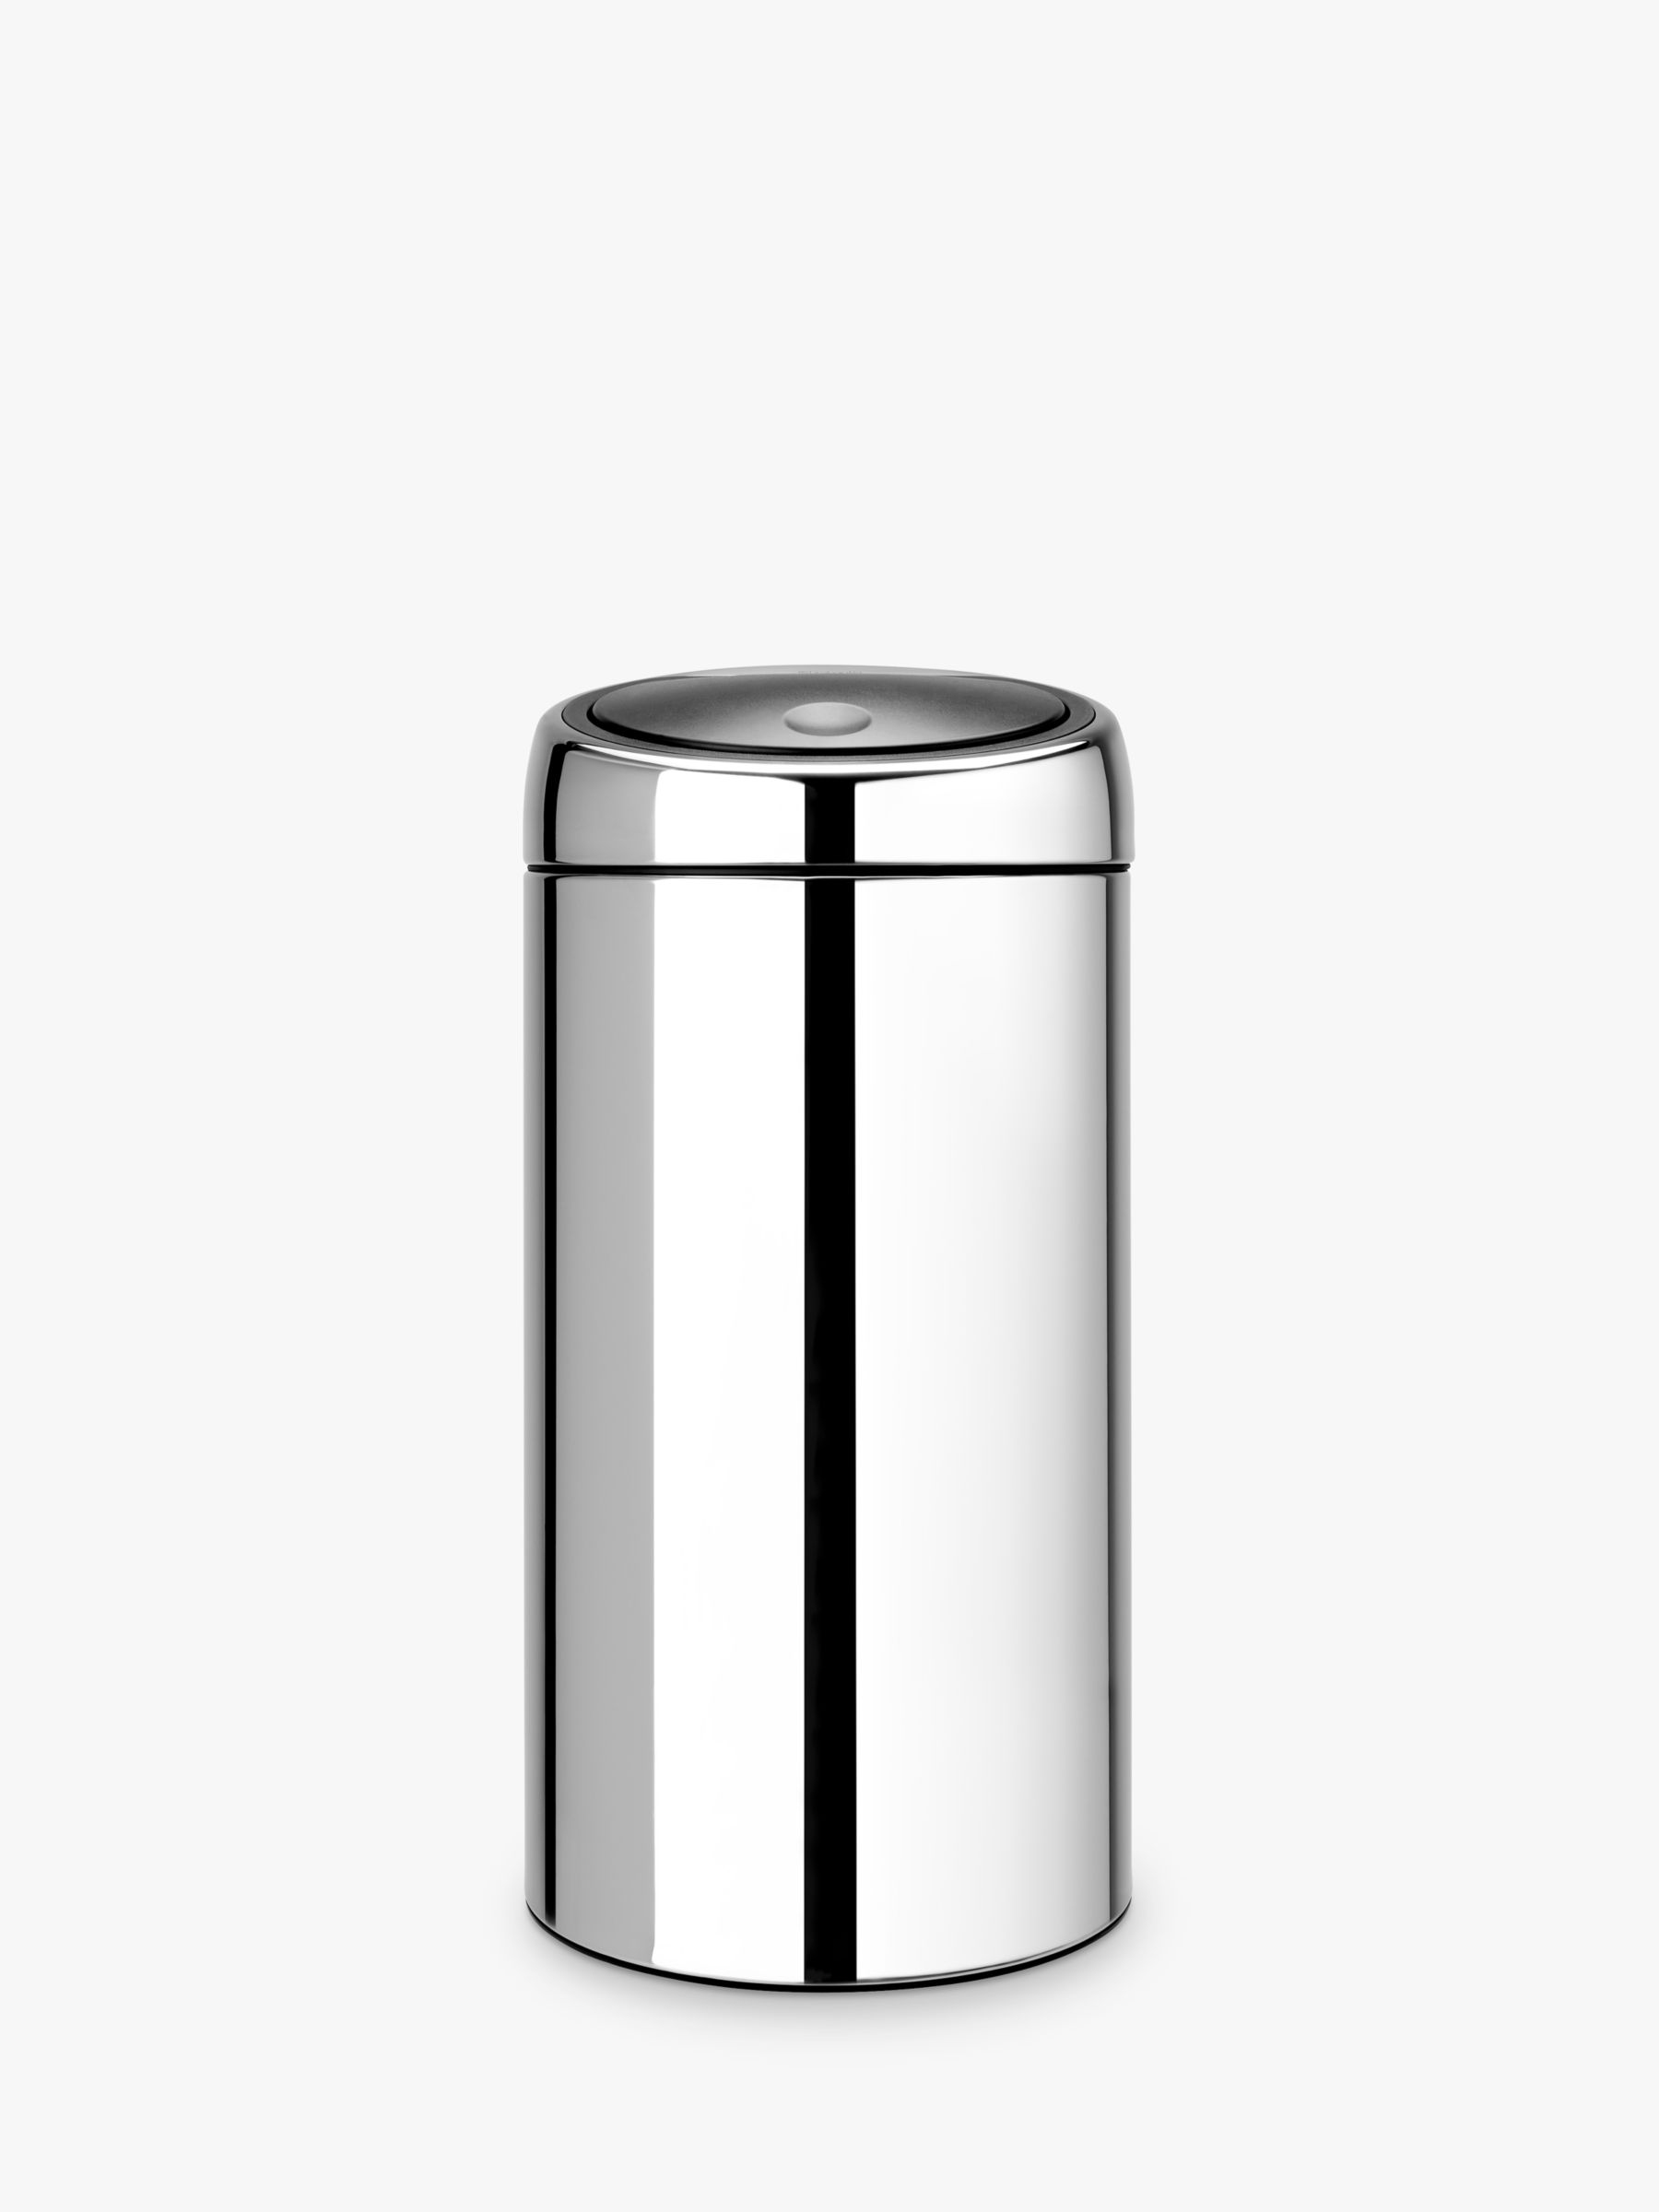 Brabantia Brabantia Twin Recycling Touch Bin, Brilliant Steel, 20/20L